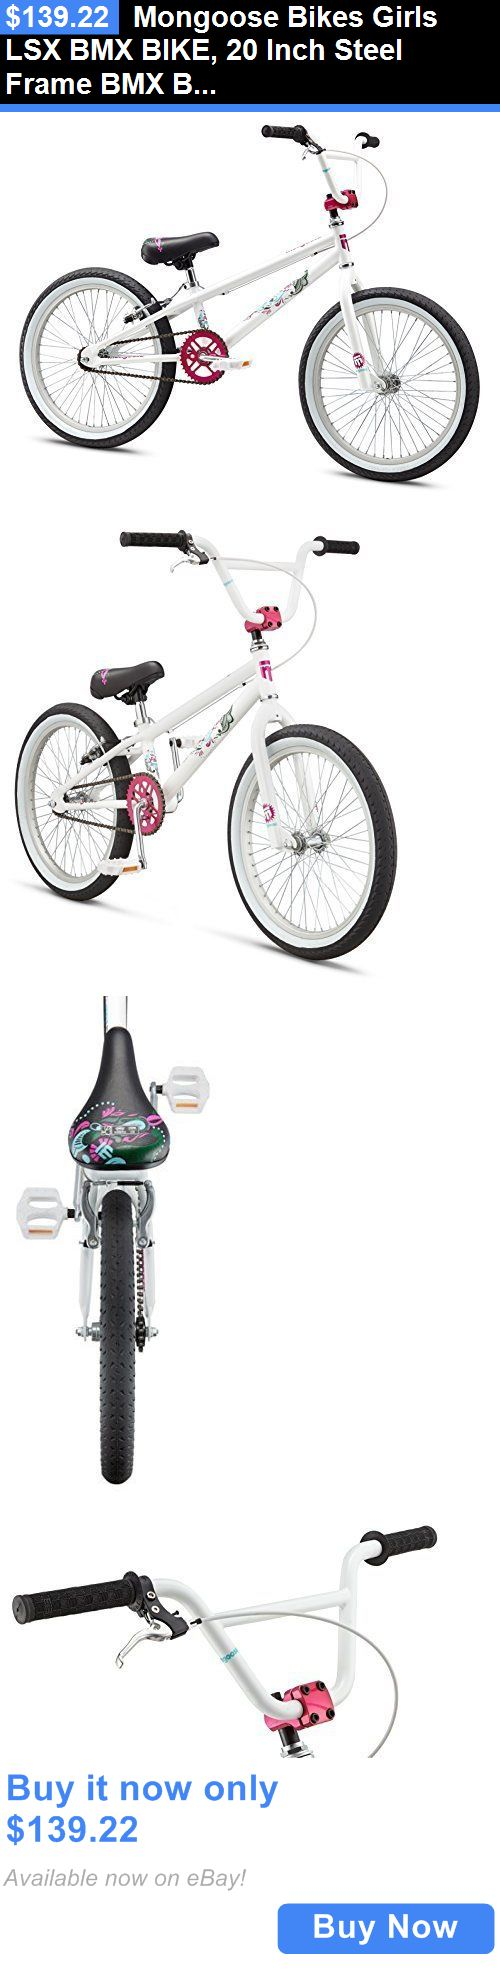 bicycles: Mongoose Bikes Girls Lsx Bmx Bike, 20 Inch Steel Frame Bmx Bicycle, White BUY IT NOW ONLY: $139.22